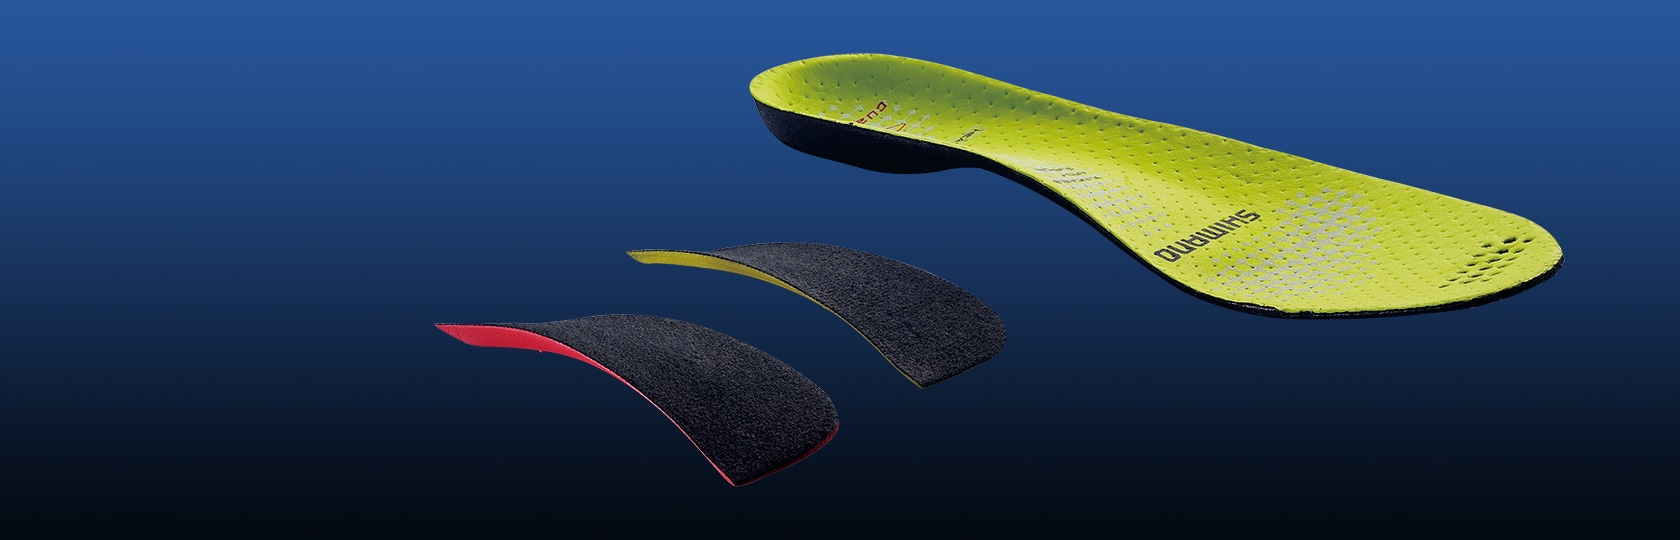 insole_technology_mv